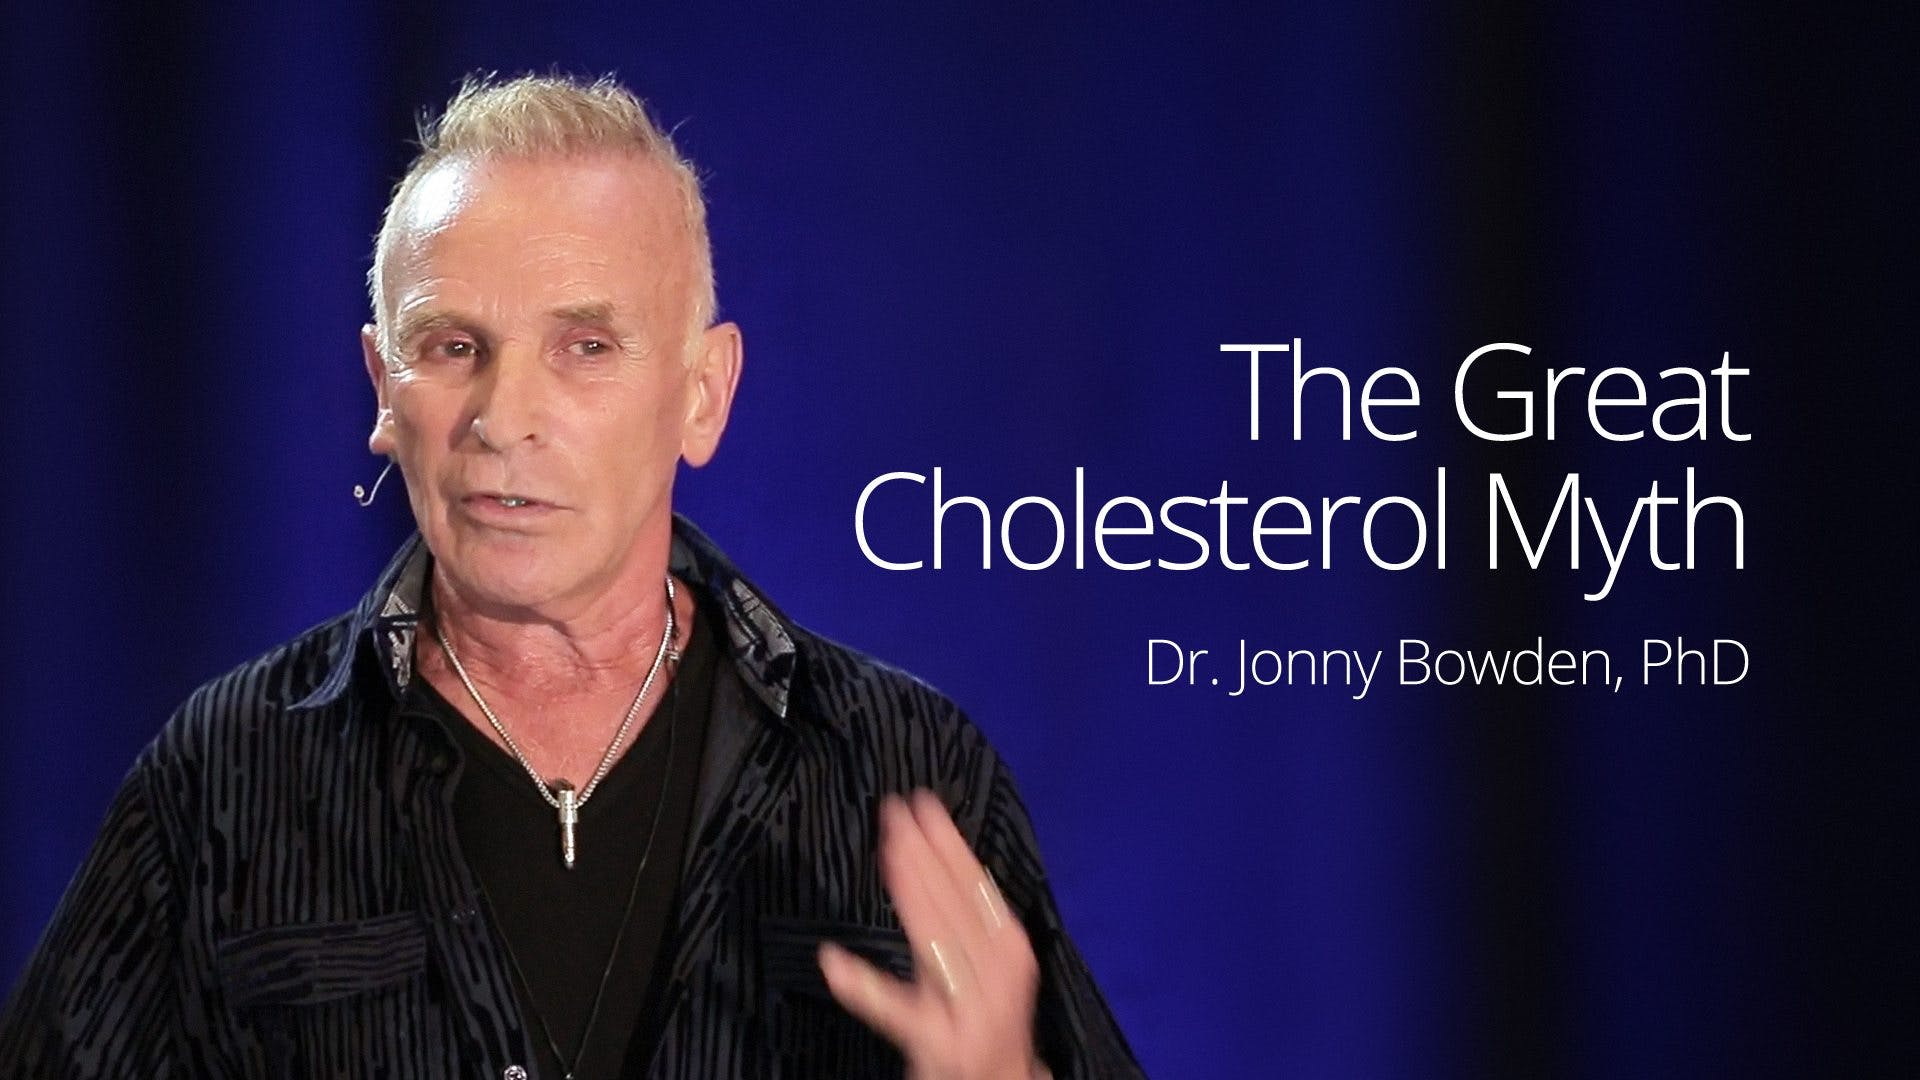 The Great Cholesterol Myth